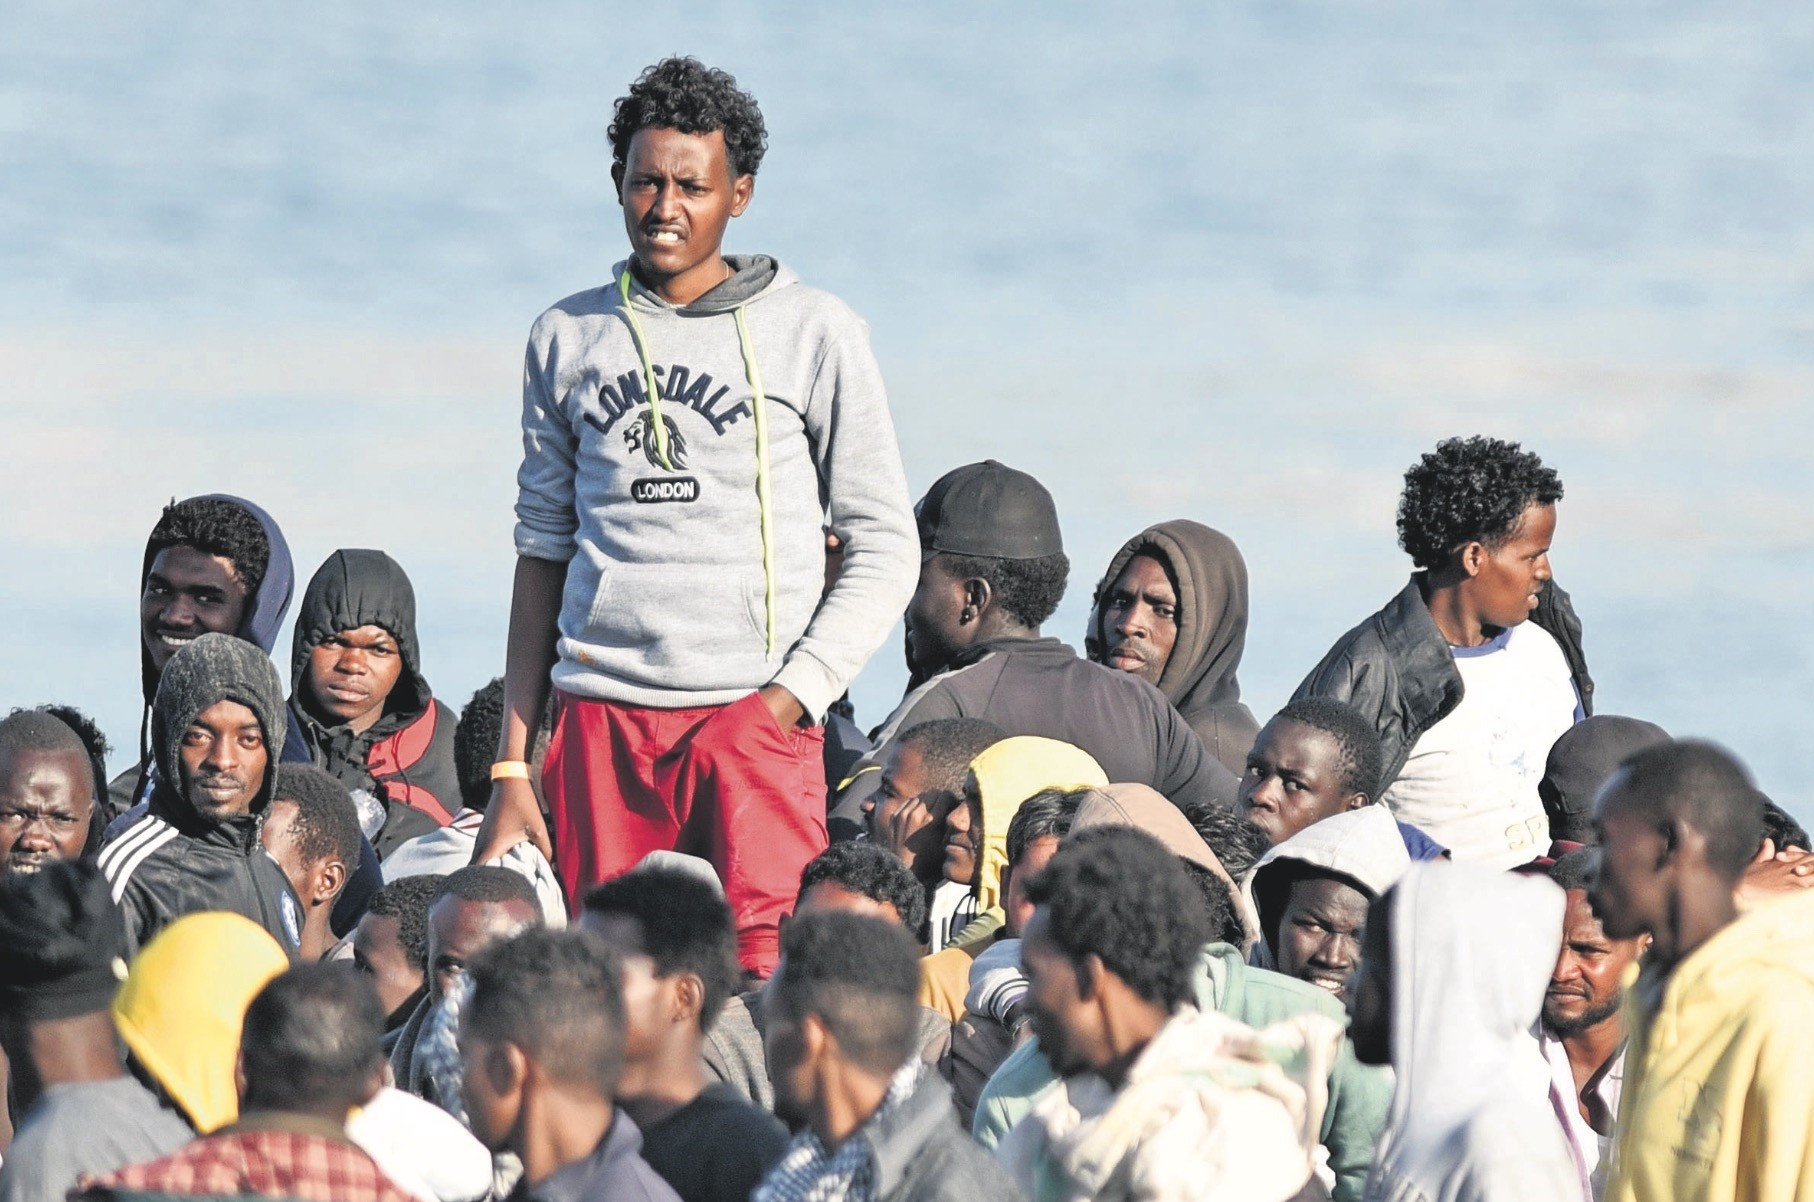 The EUu2019s Mediterranean migrant crisis has escalated after Italy refused the entry of a rescue ship with 629 people aboard, June 9.